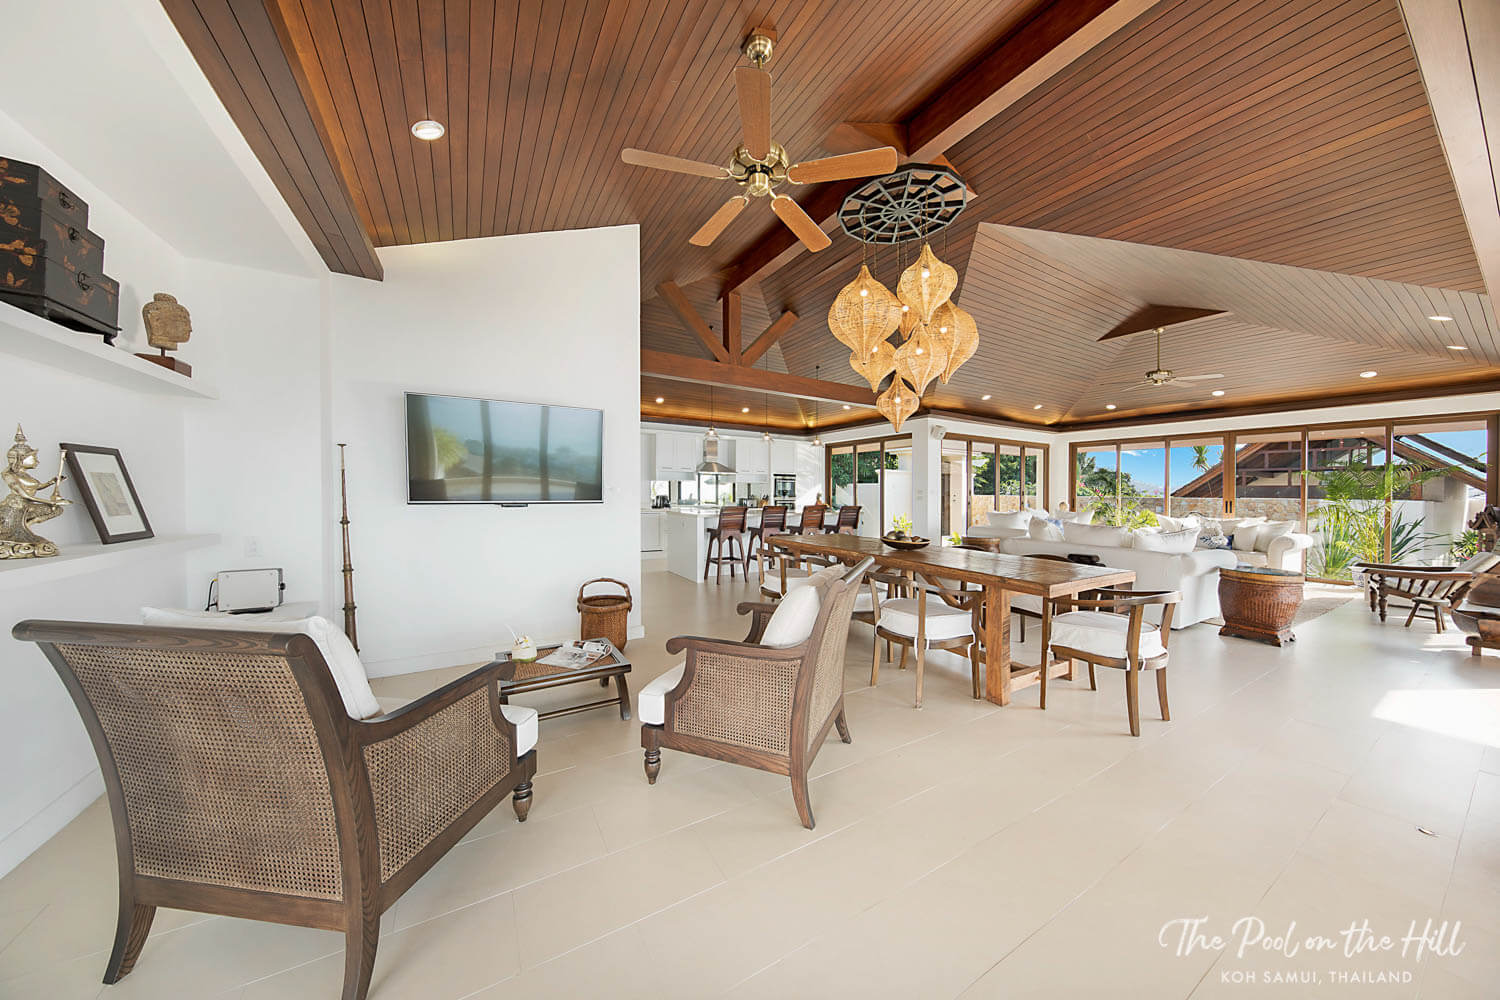 Rent a villa in Thailand: Villa concierge services in Koh Samui, Thailand – The villa's open-plan kitchen, living and dining area includes a family-size dining table for up to ten people, plus a large kitchen island.